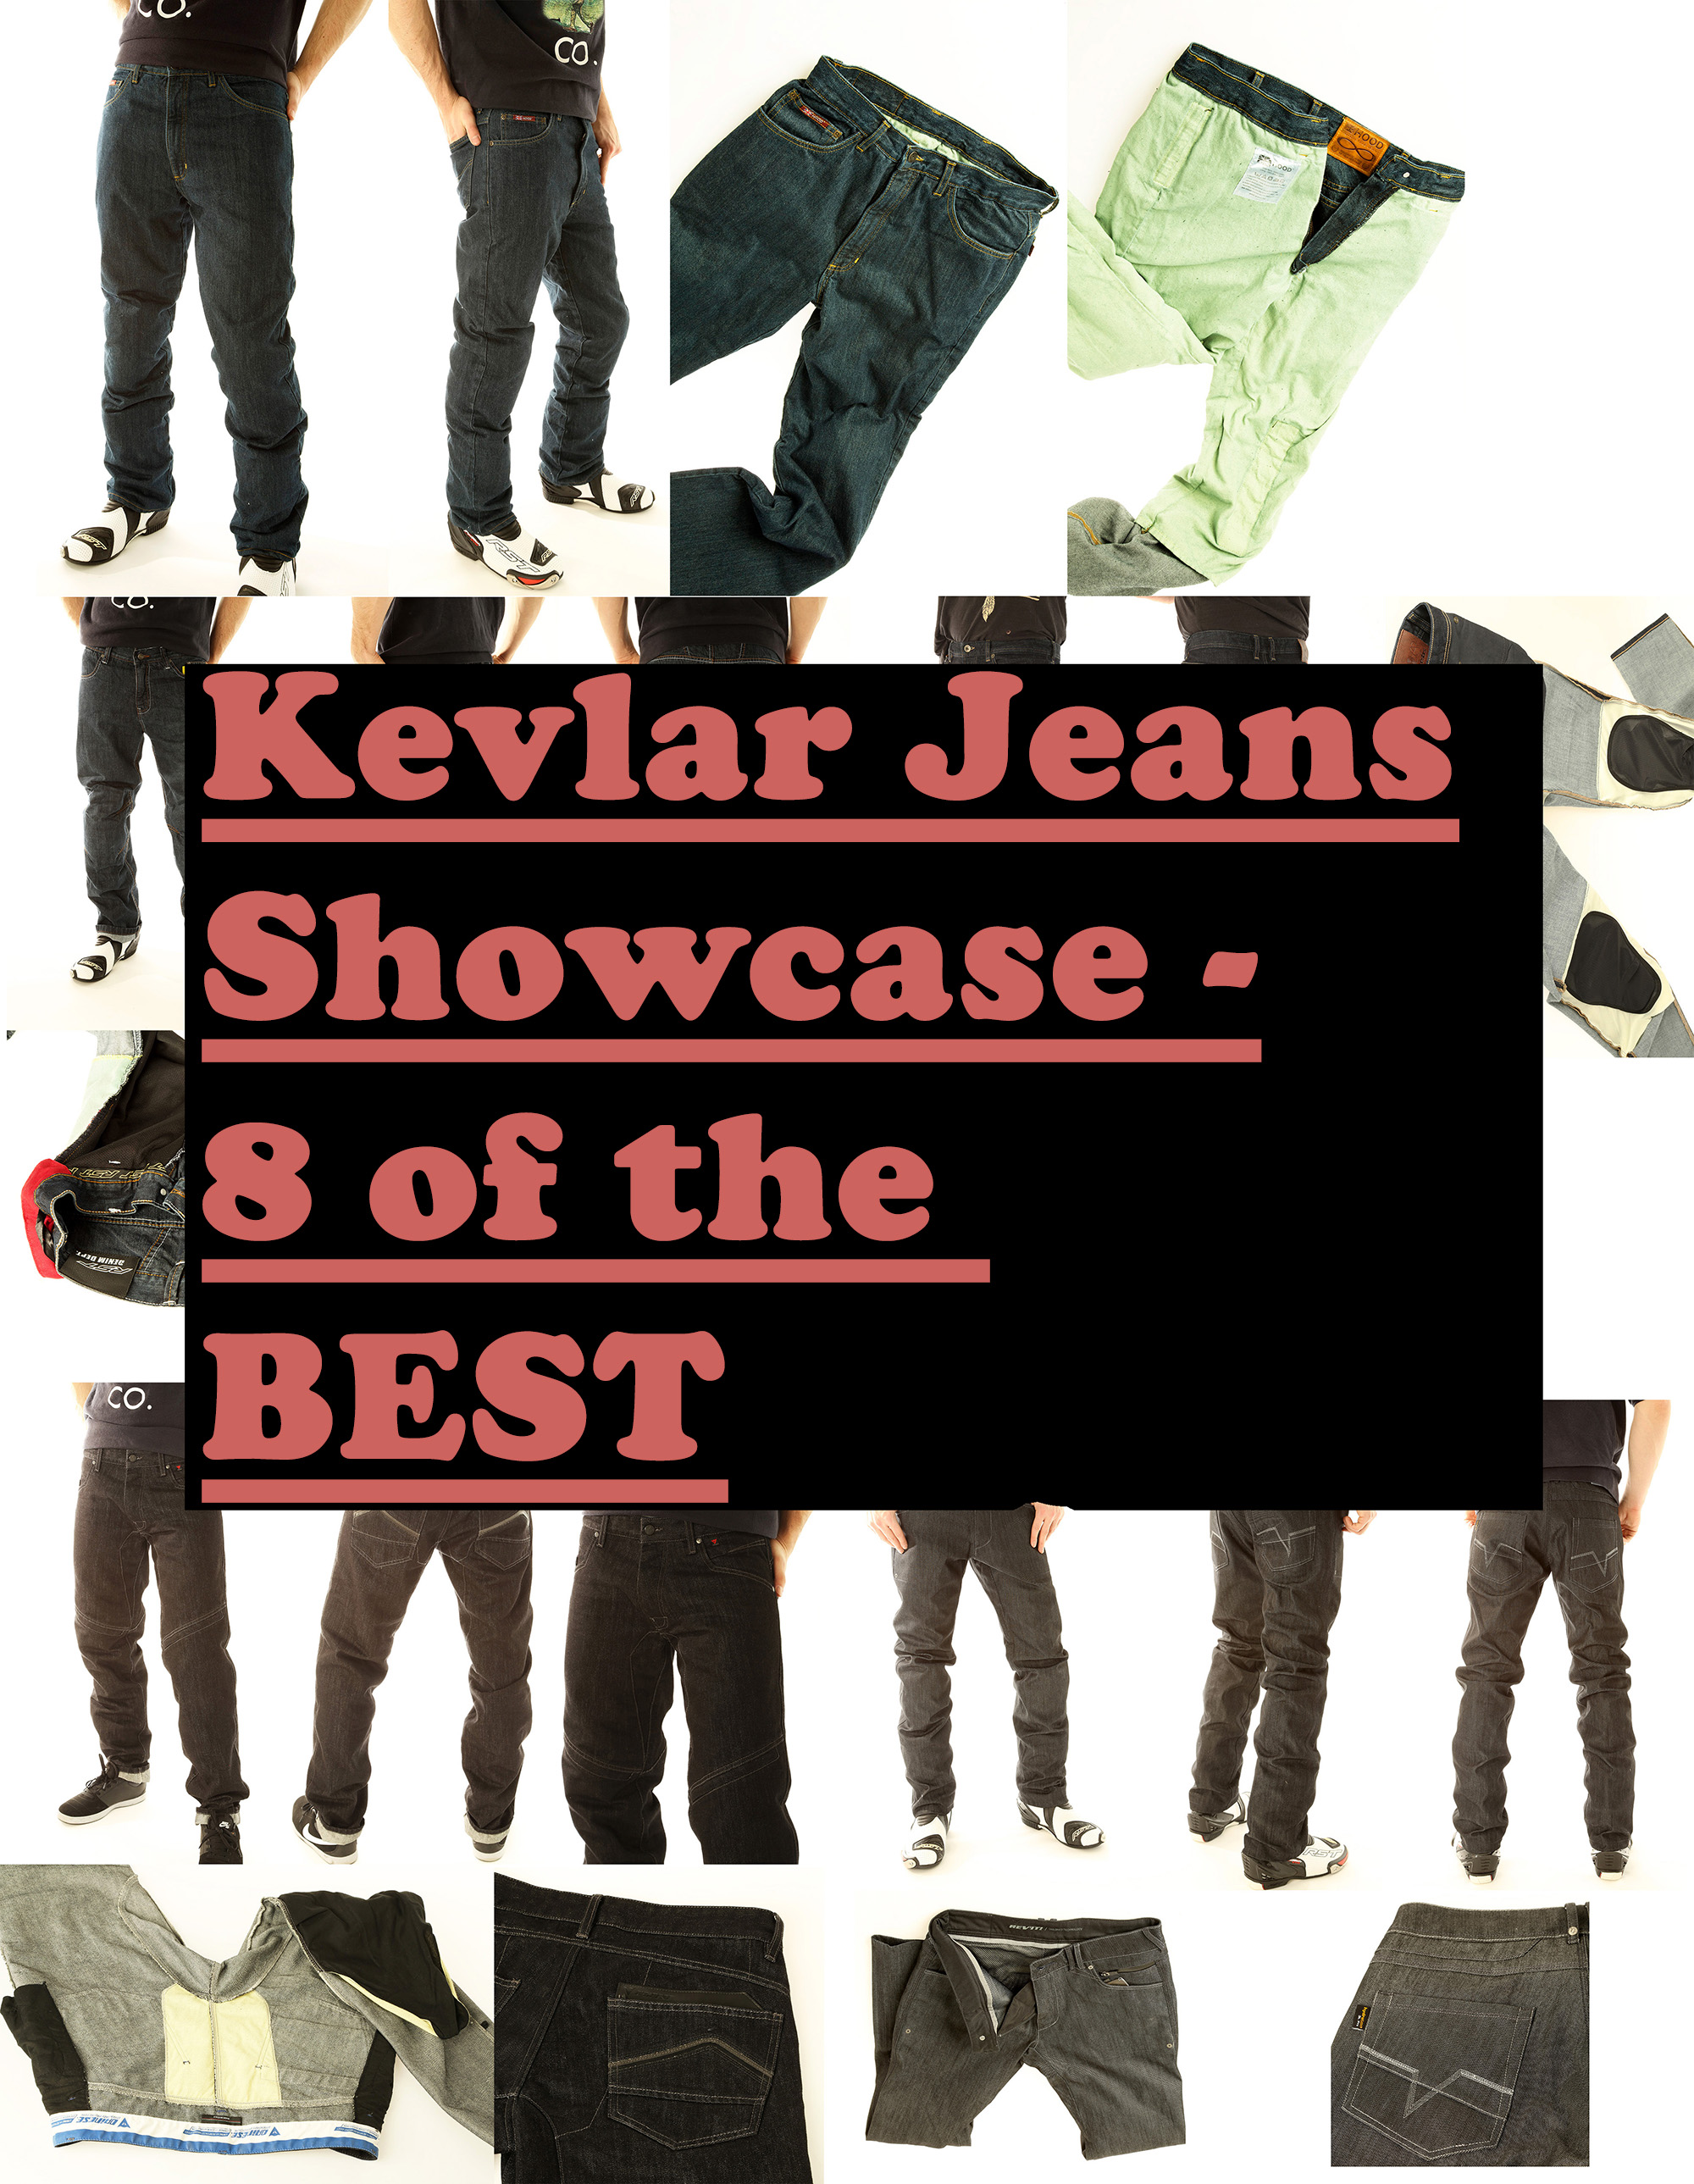 Tested: Kevlar jeans review